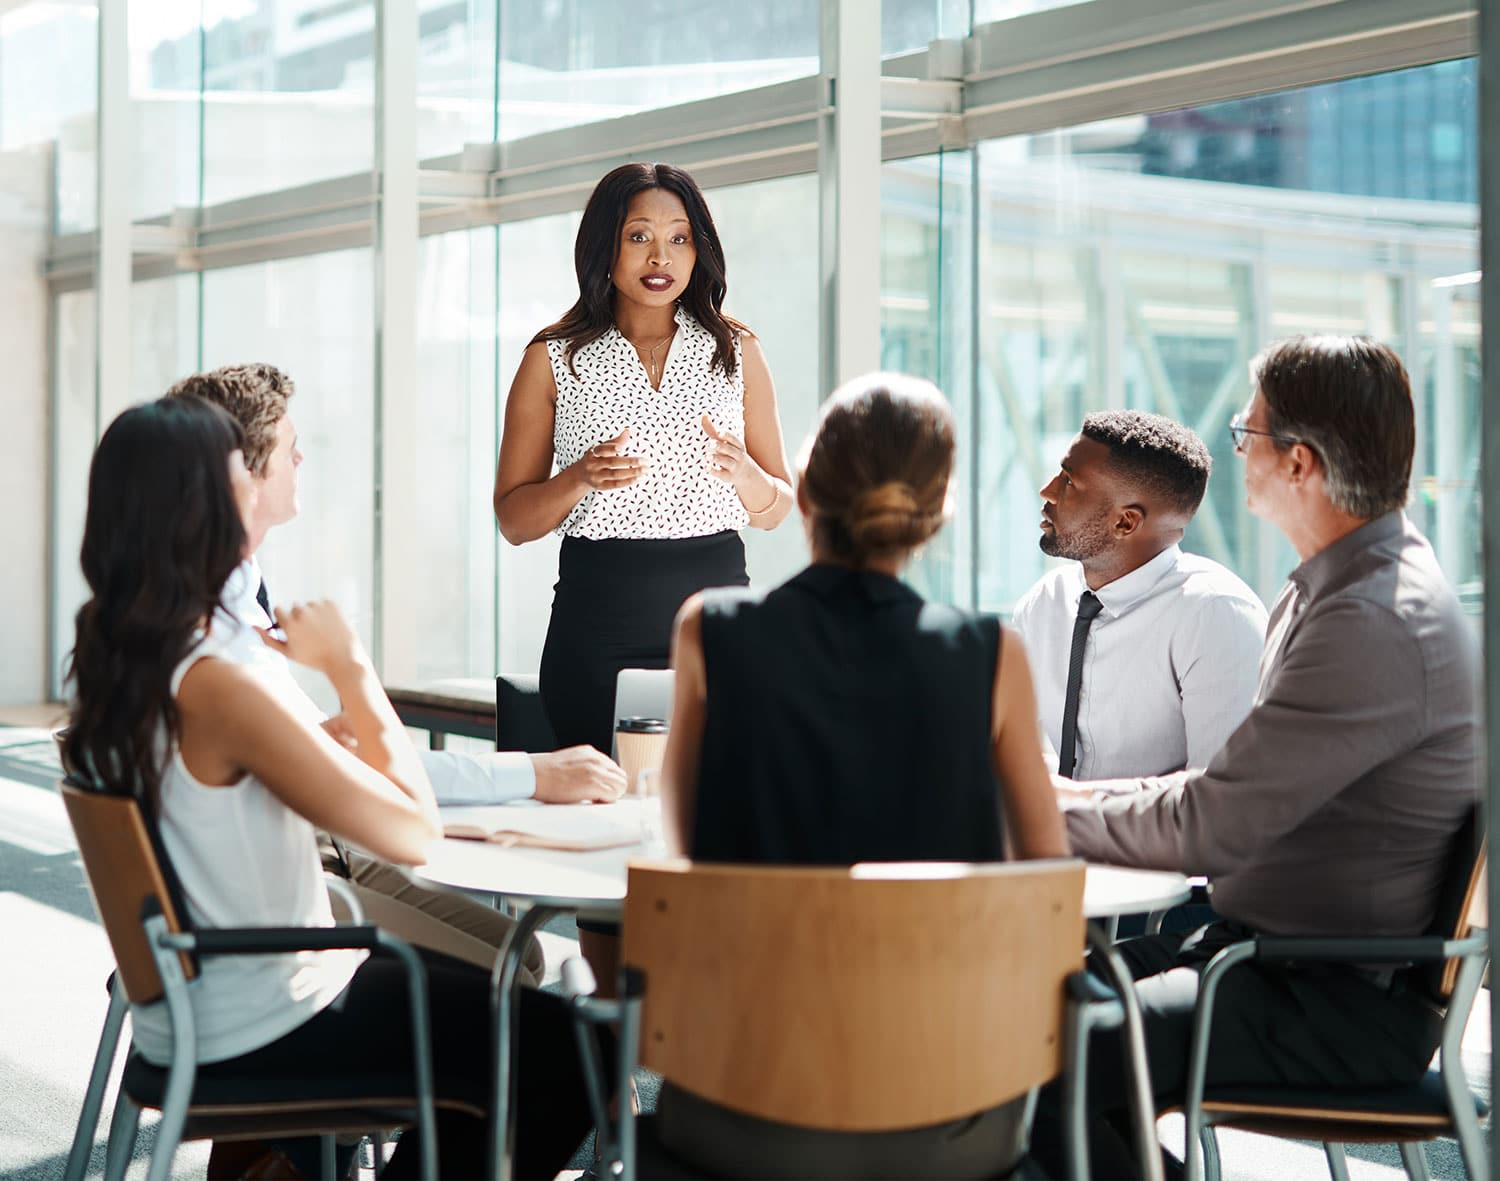 Image of women standing and presenting to a group of five professionals sitting at a deck dressed professionally